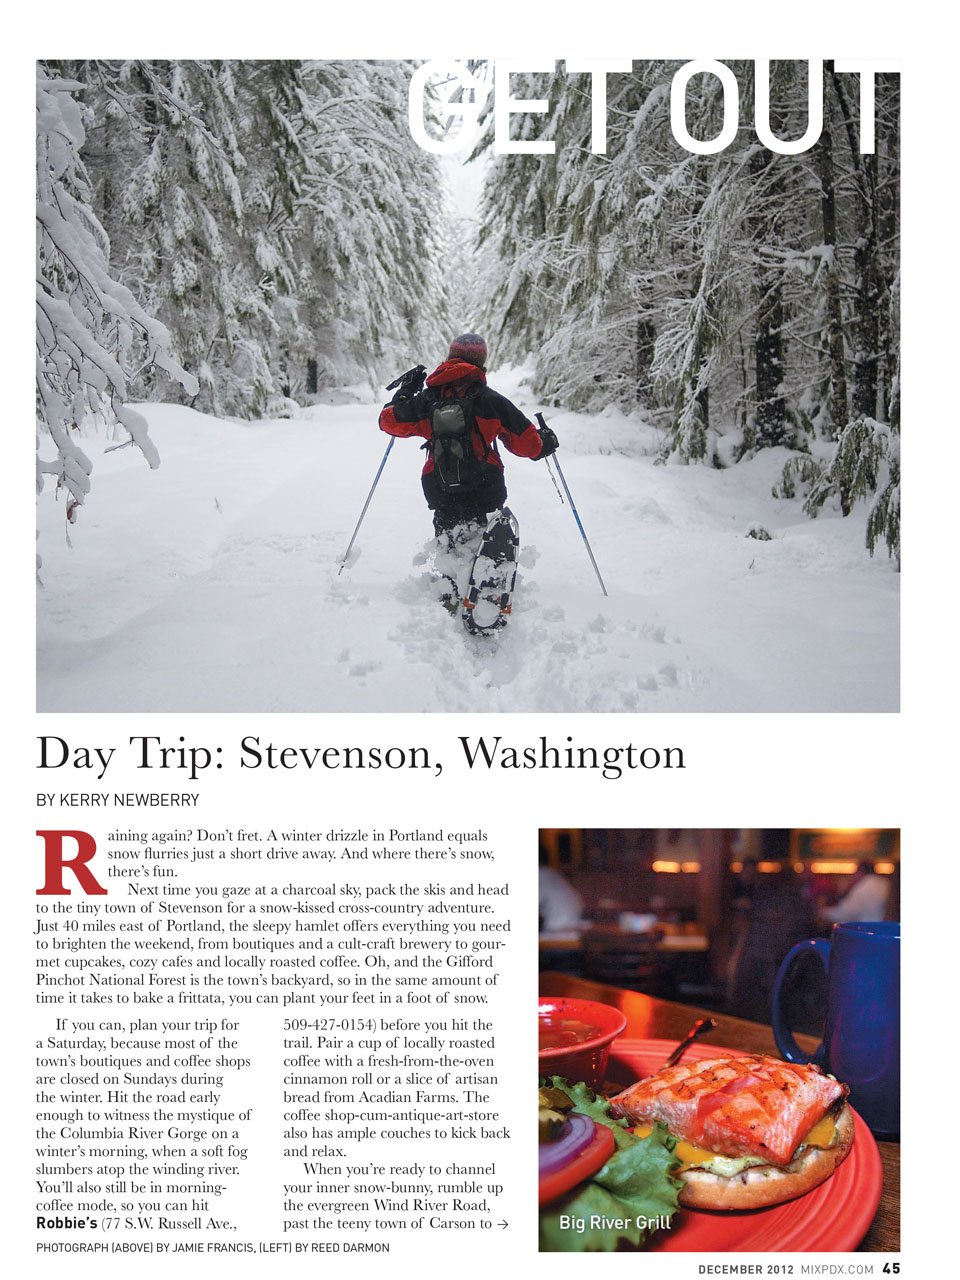 Dining in Stevenson | Washington in Winter: Snow-shoeing and Craft Beer